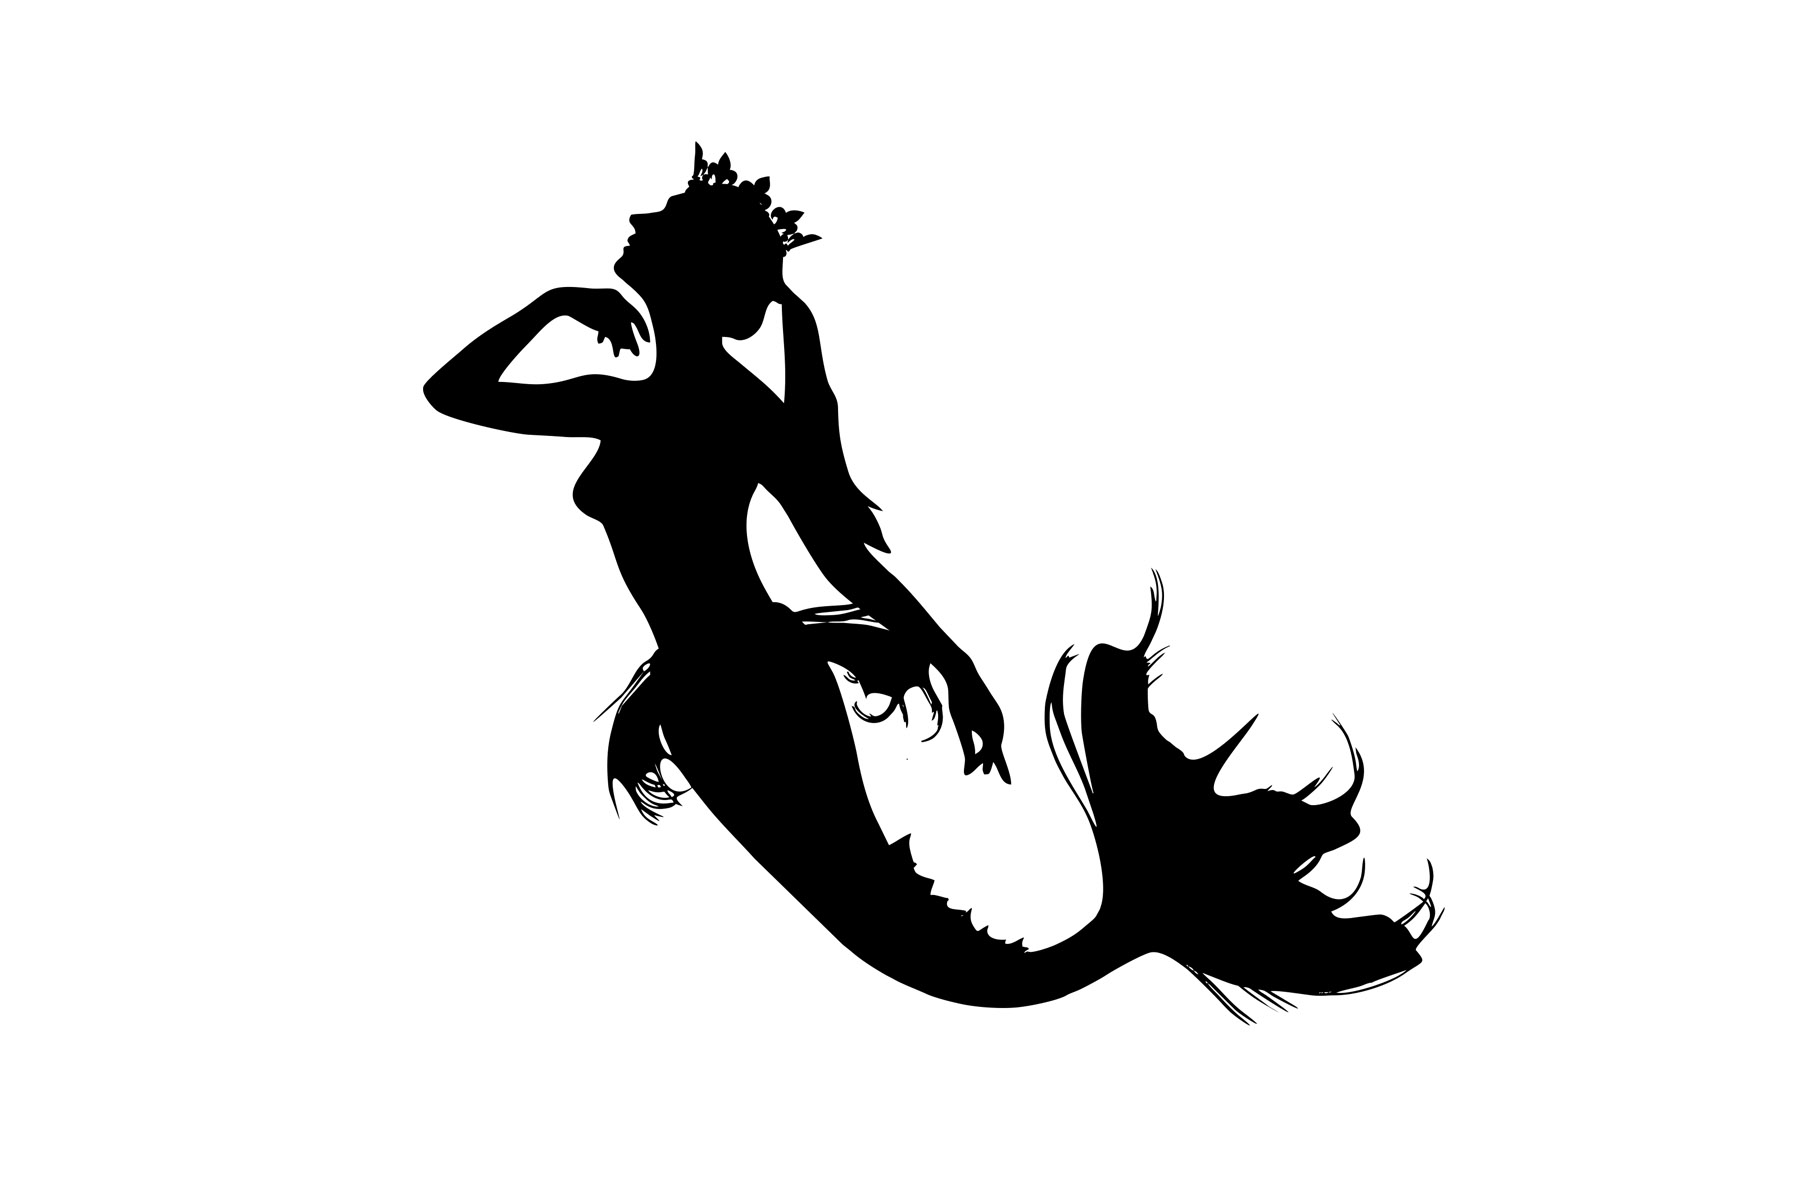 Download Silhouette Mermaid Scales Svg Free Free Cut Files Include Svg Dxf Eps And Png Files